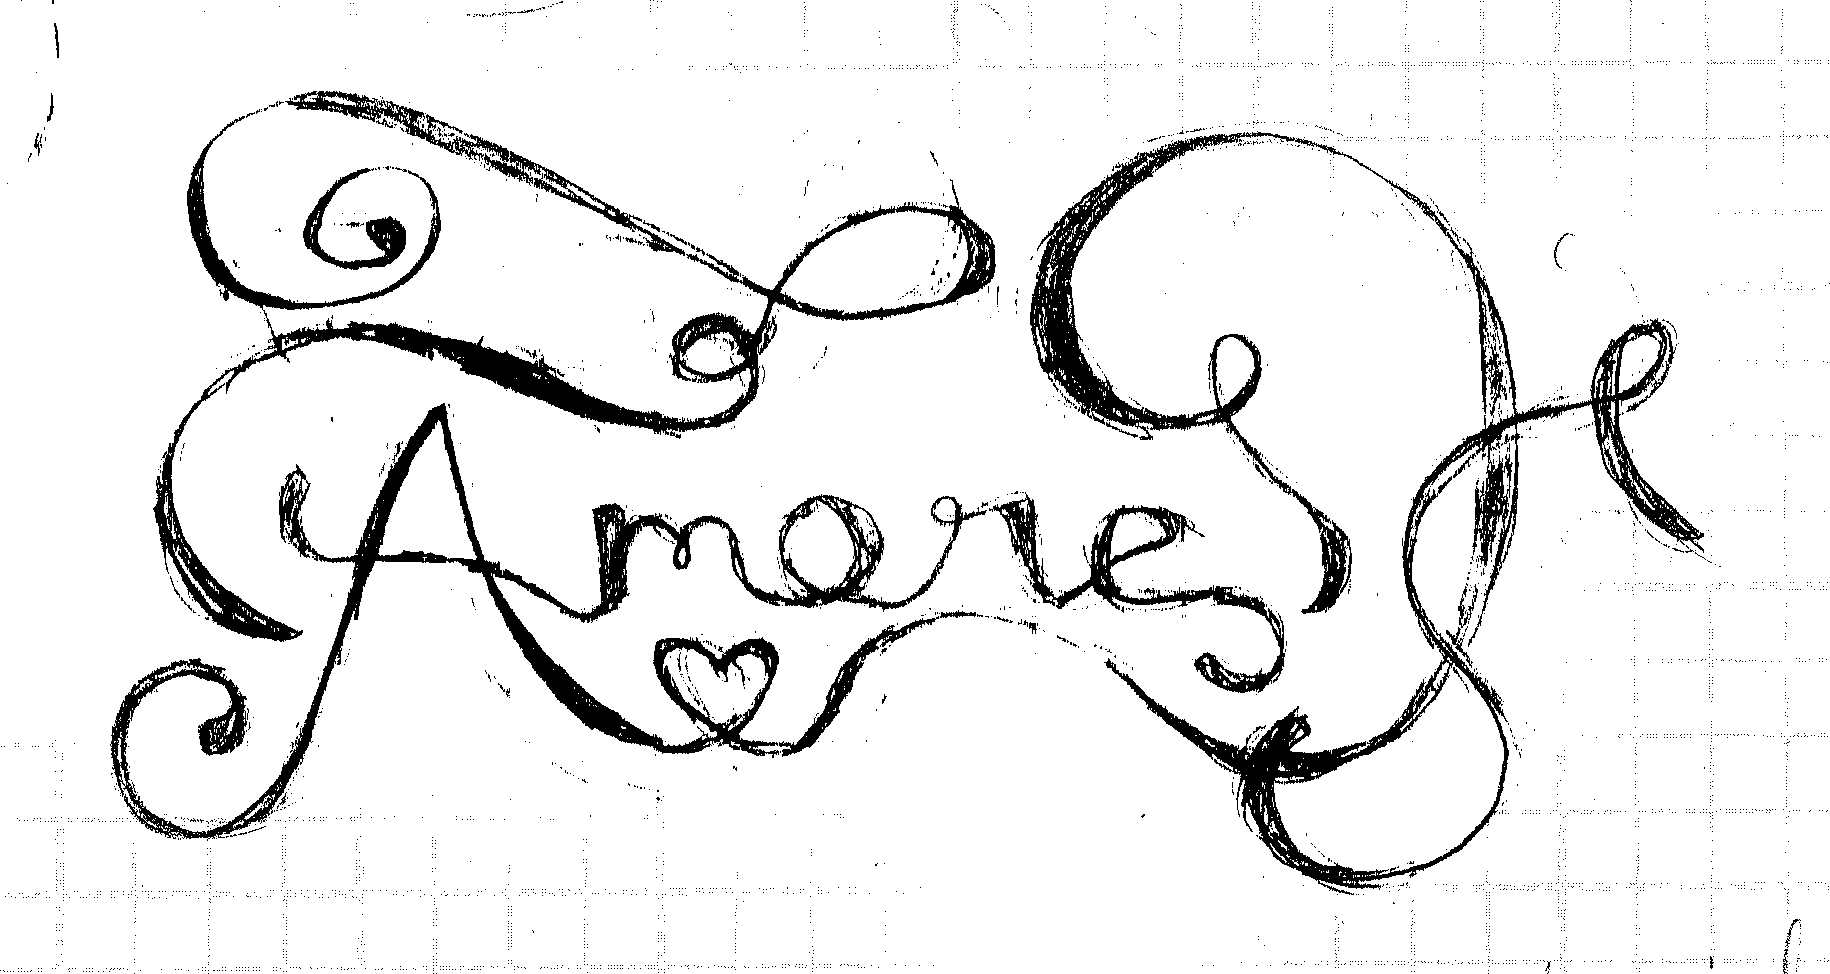 amore - image 1 - student project